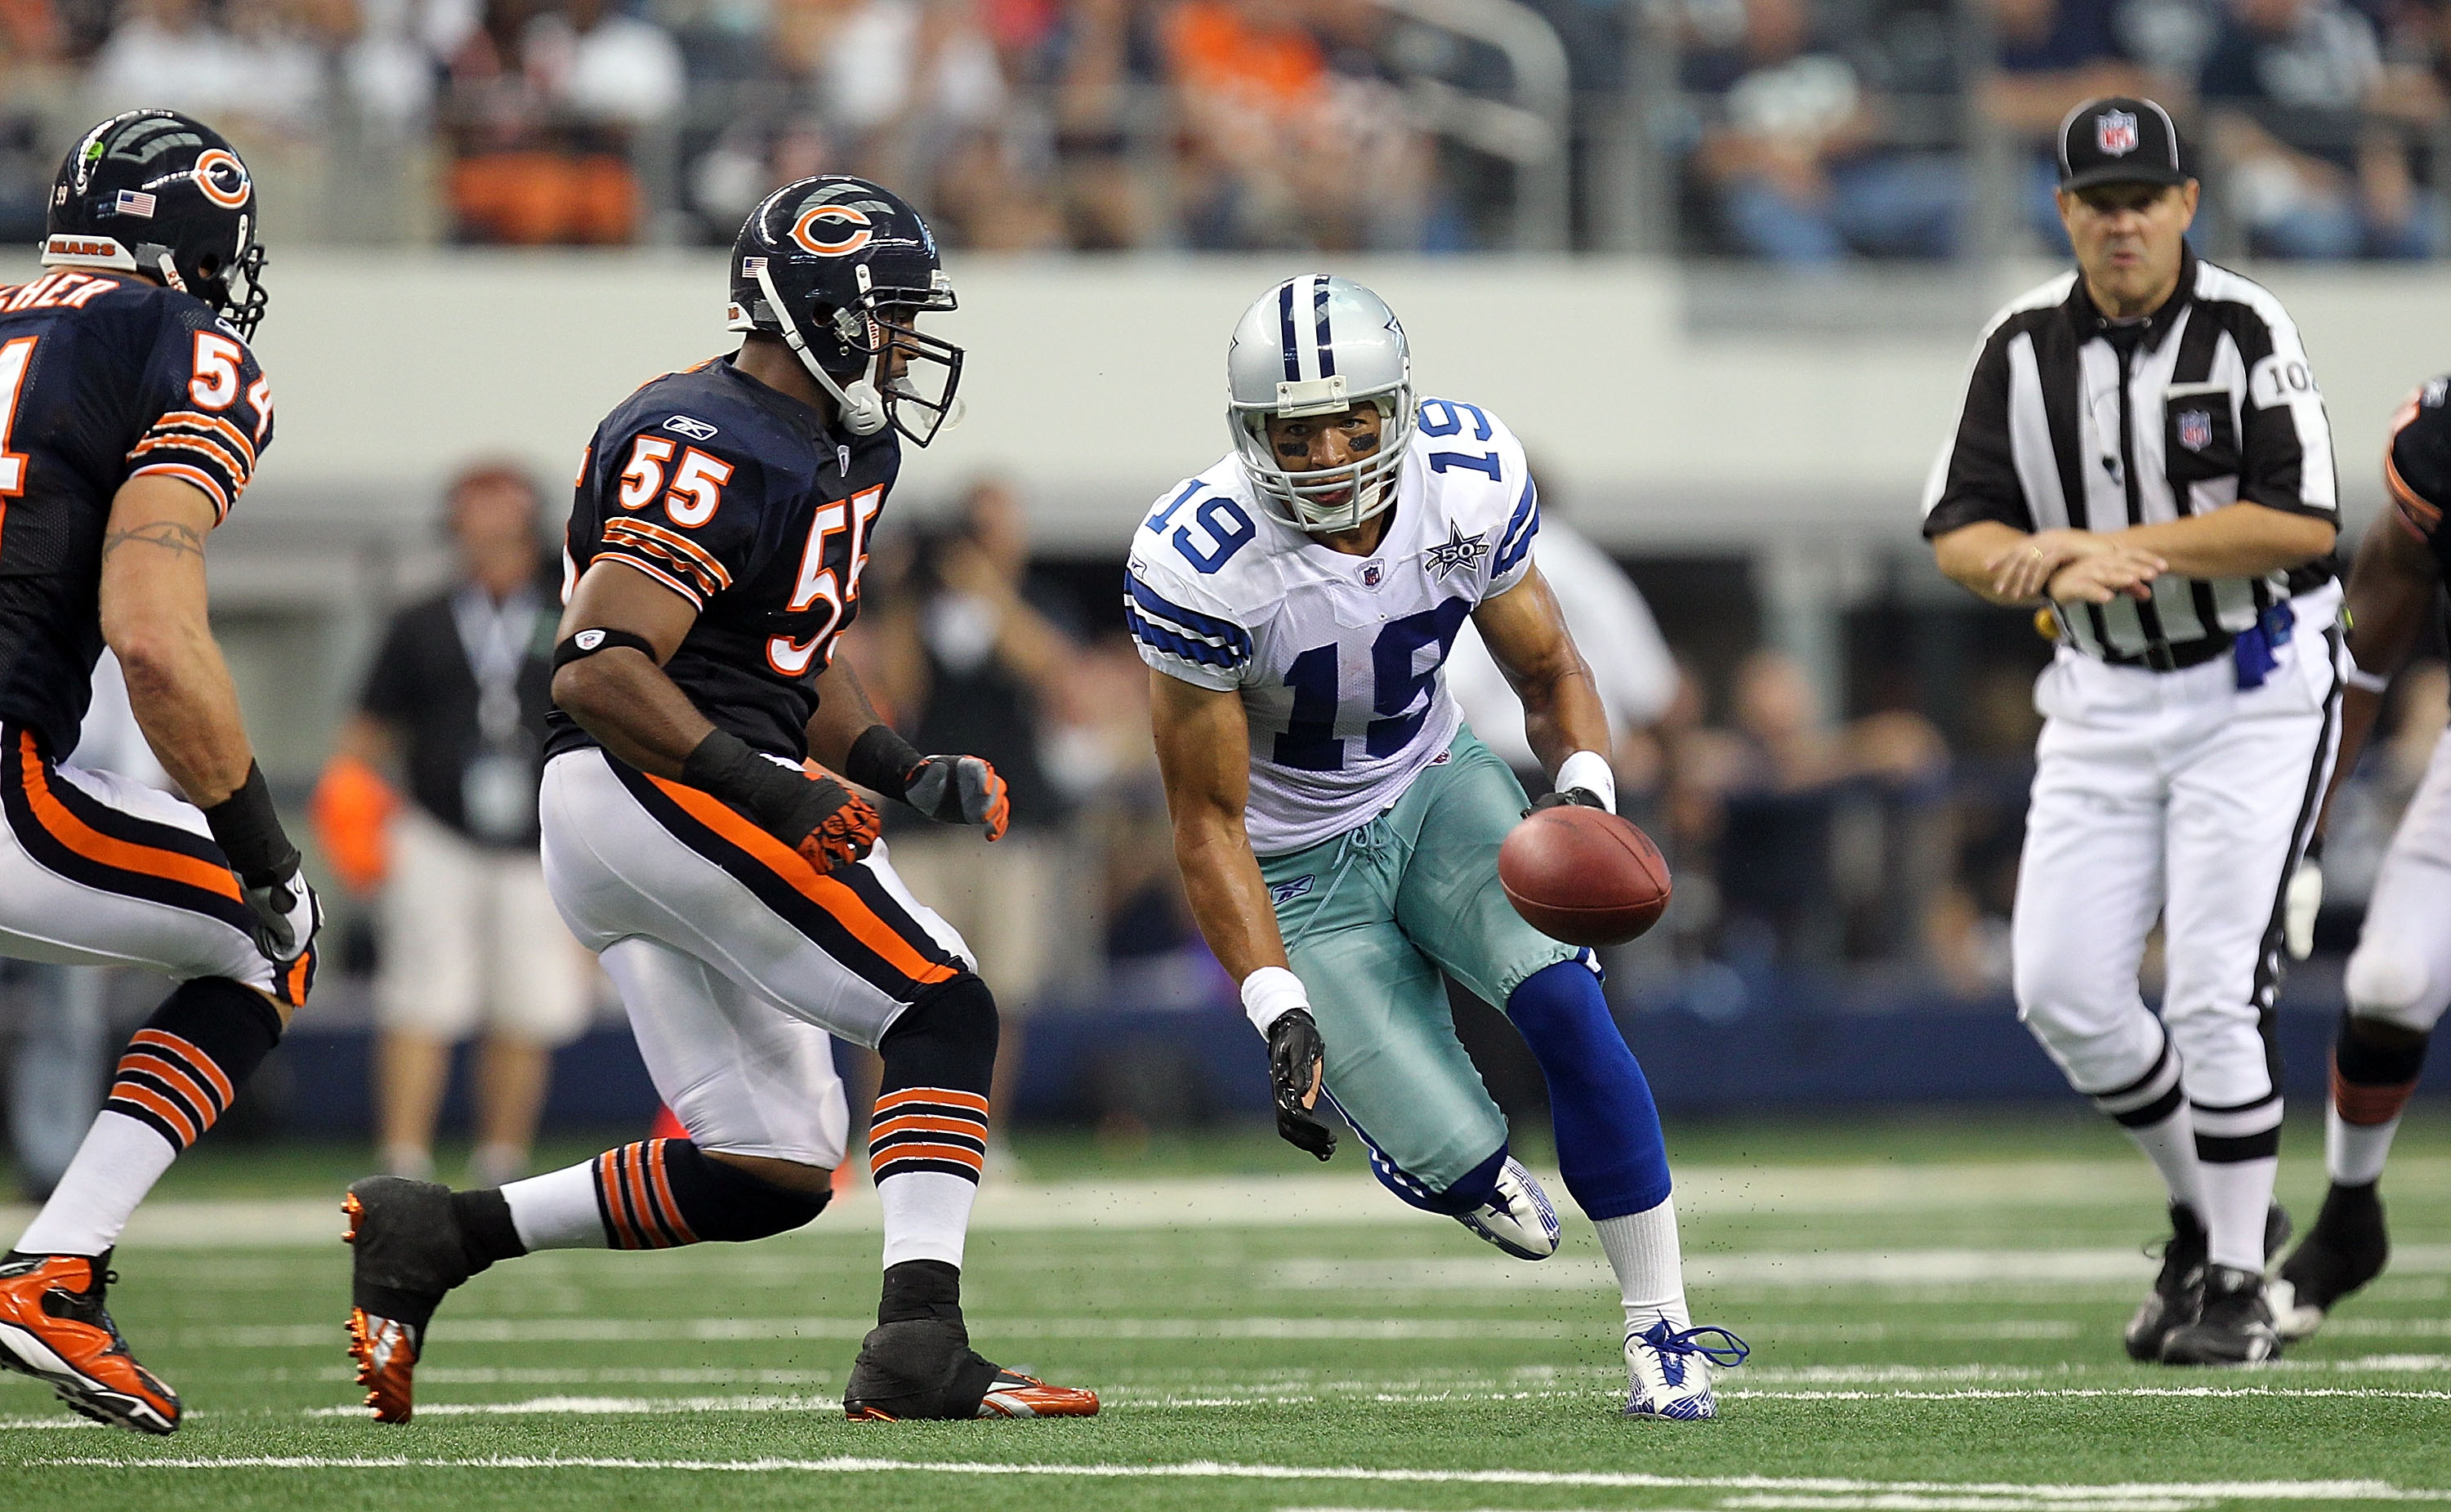 ARLINGTON, TX - SEPTEMBER 19:  Wide receiver Miles Austin #19 of the Dallas Cowboys runs past Lance Briggs #55 of the Chicago Bears at Cowboys Stadium on September 19, 2010 in Arlington, Texas.  (Photo by Ronald Martinez/Getty Images)